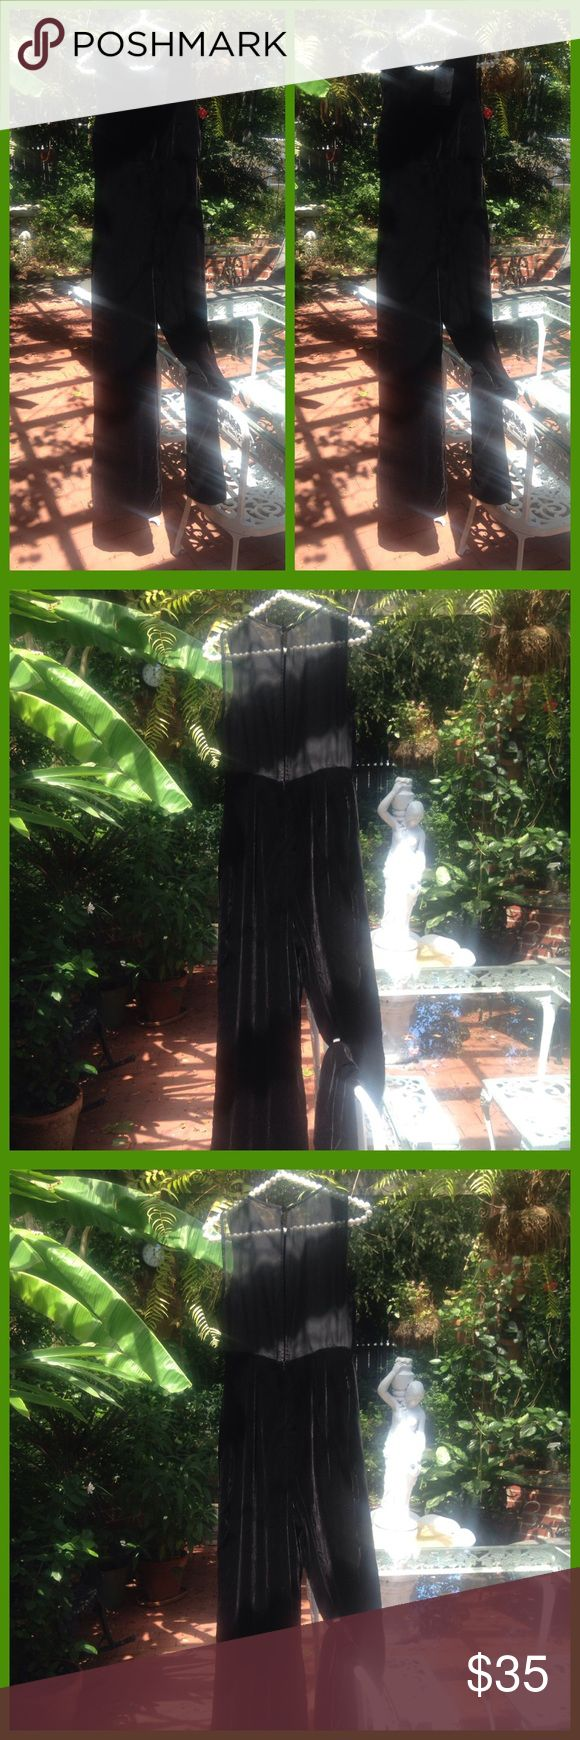 """""""Soft Velvet As The Night"""" NWT JUMPSUIT! Gorgeous Zara Basic jumpsuit in 100% polyester that has the nap and feel of velvet. The back of the top is black chiffon style polyester. This is truly a dress up classy way to wow 'em! Zips up the back. Shoulder to hem is 60 inches, bust is 30 inches, inseam is 31 inches, leg opening is 11 inches lying flat. The price indicated on the tag is in euros but I converted it to US dollars. Note this is Zara Basic. Zara Pants Jumpsuits & Rompers"""